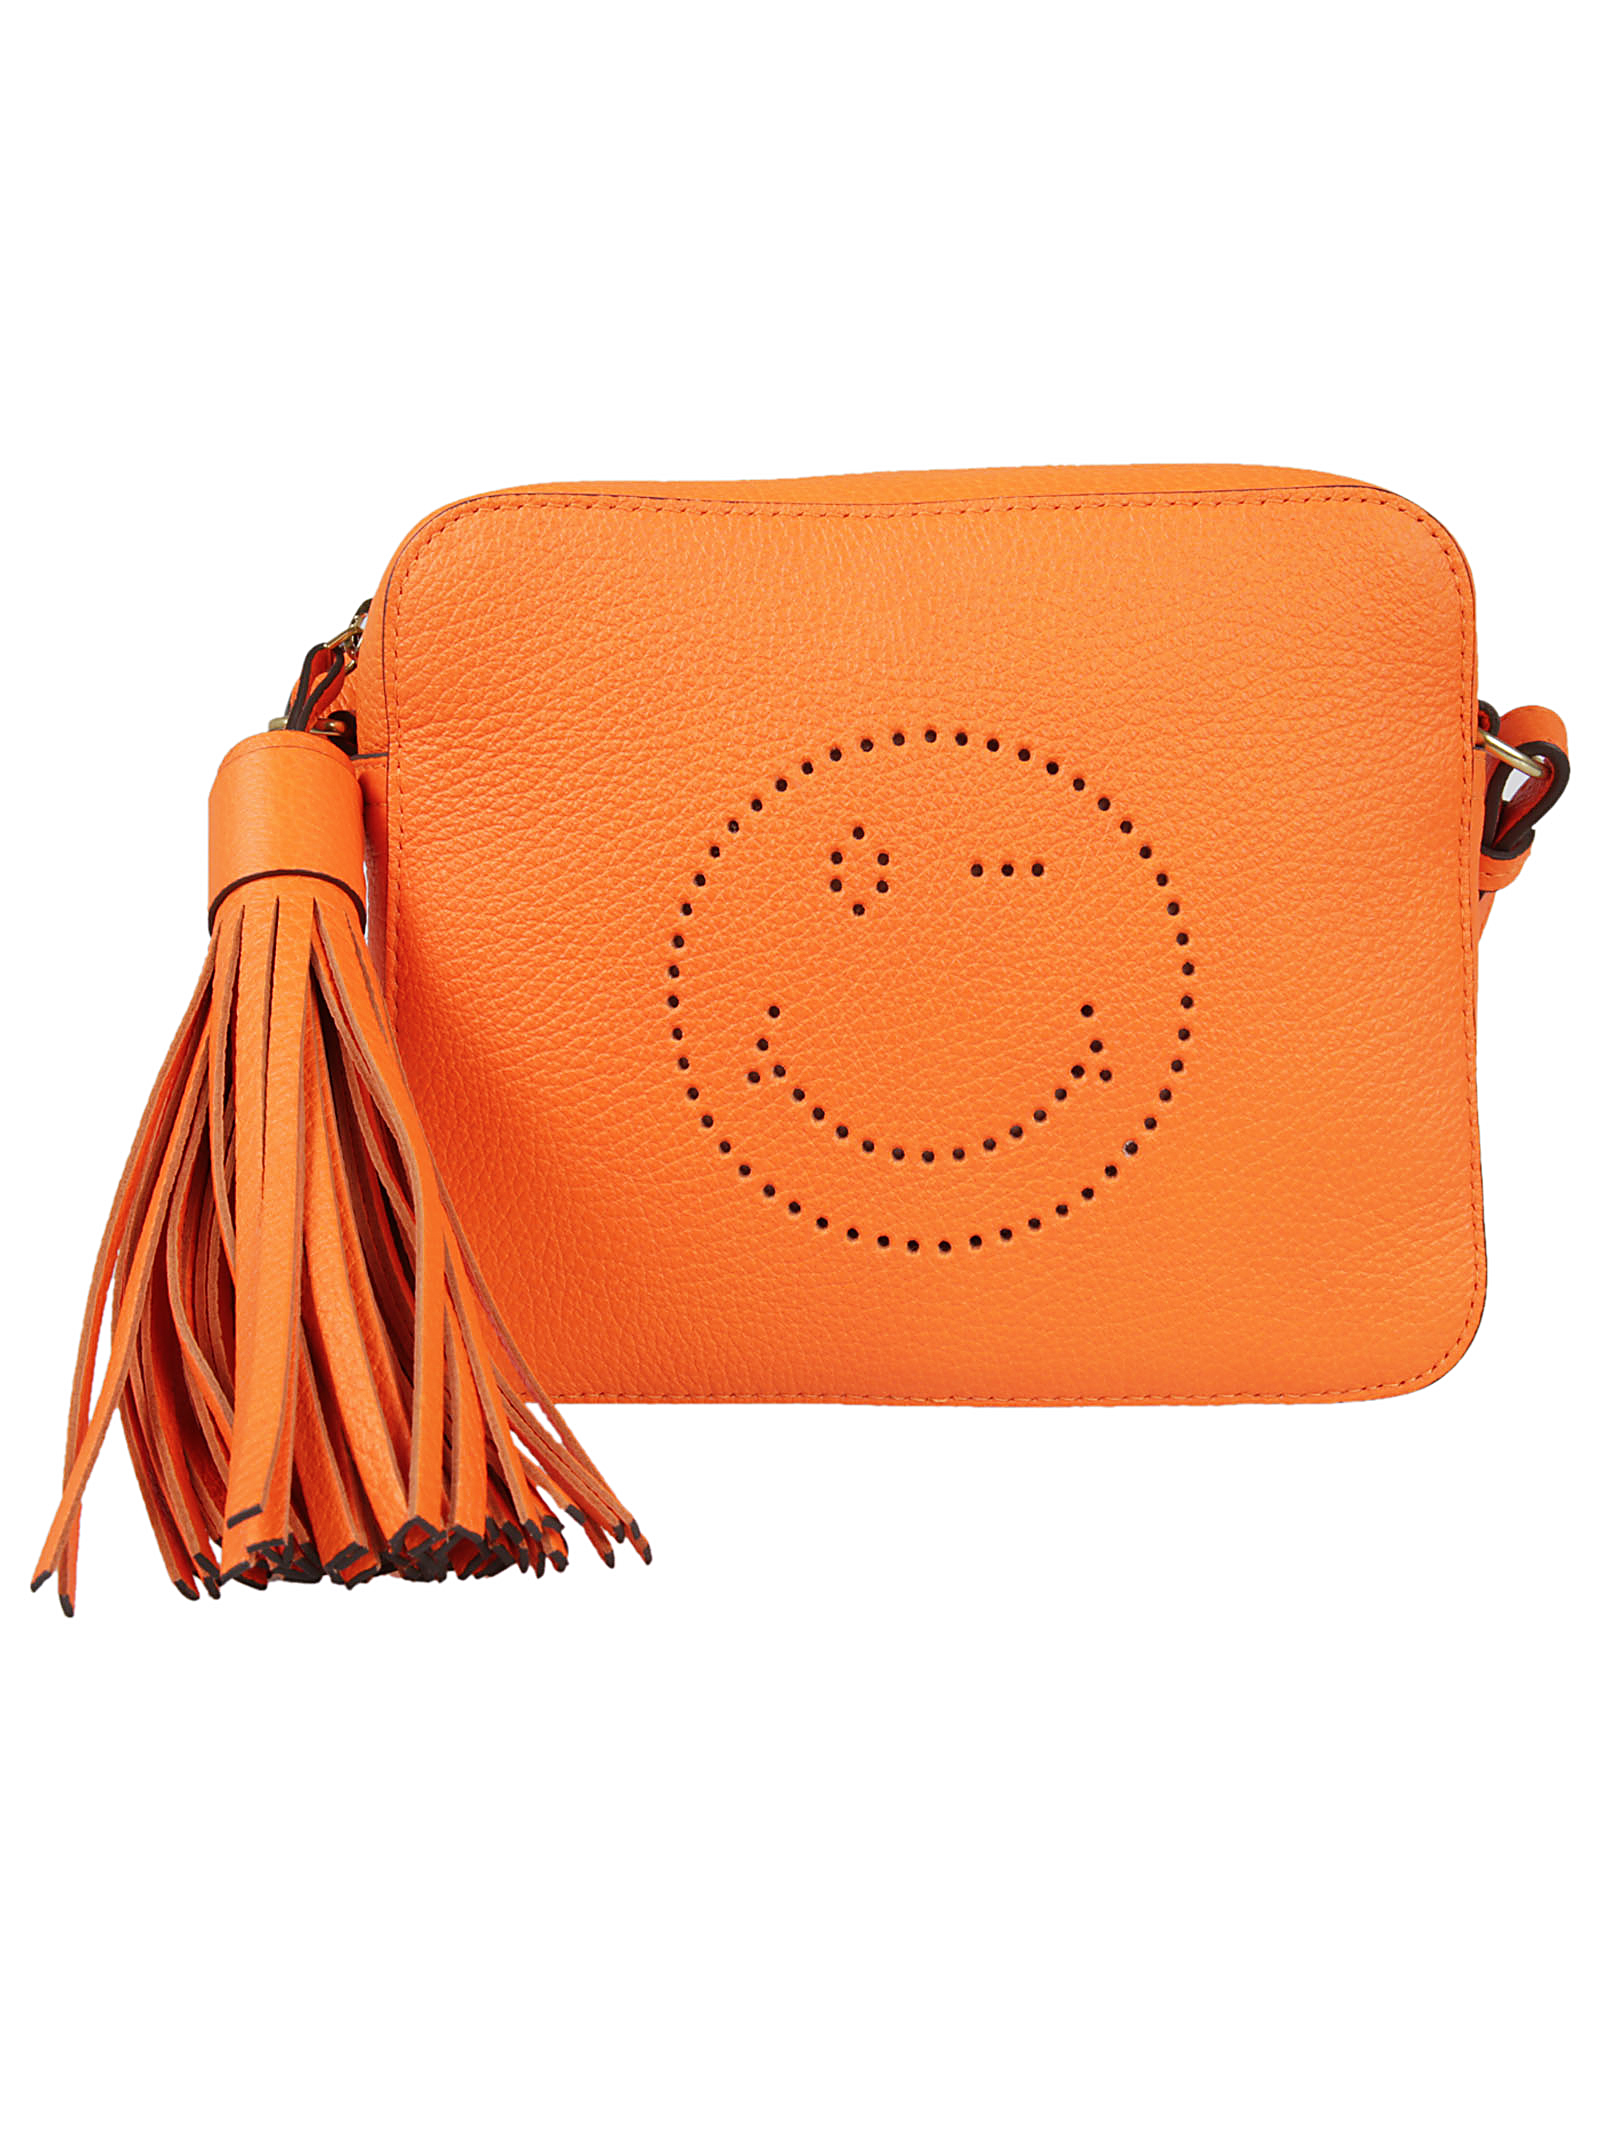 Anya Hindmach Anya Hindmarch Smiley Shoulder Bag